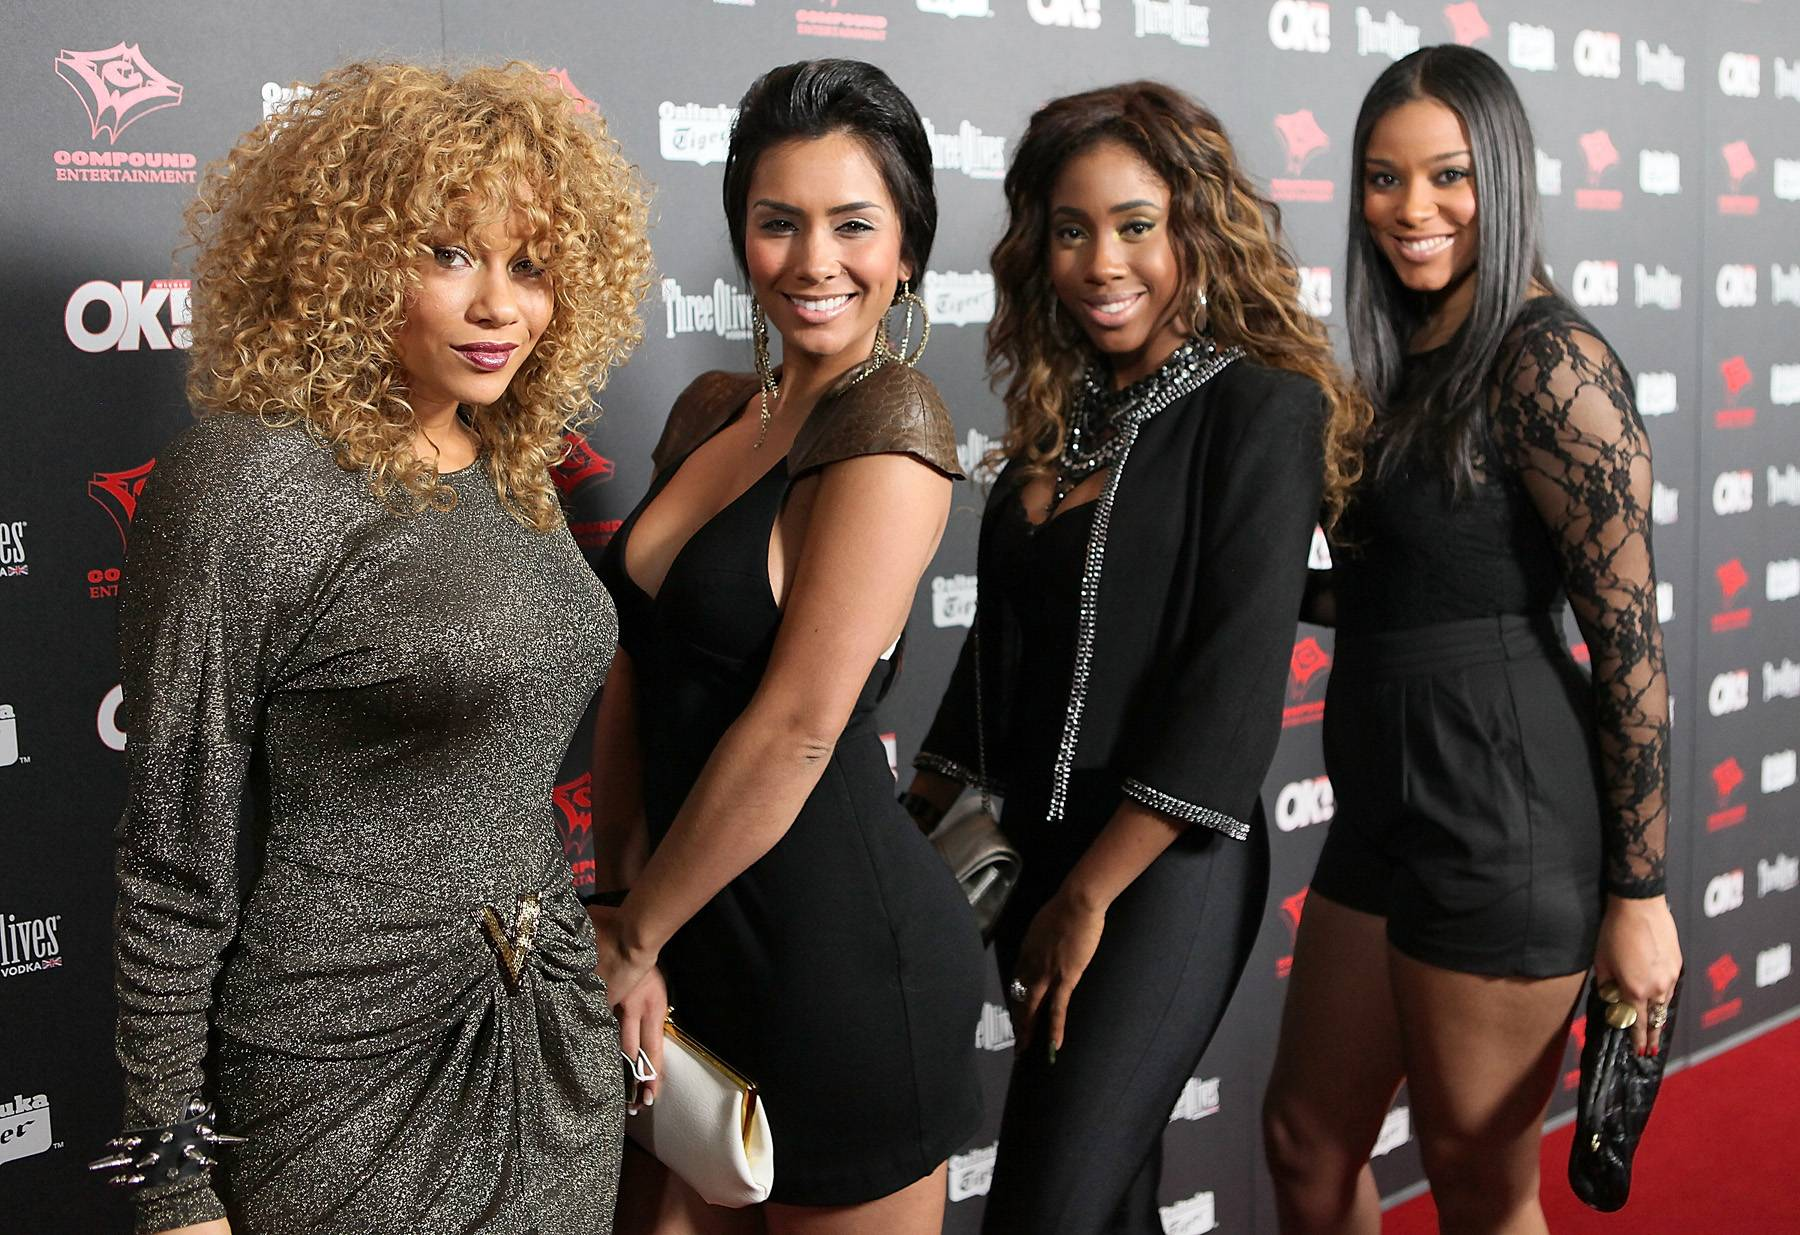 RichGirl - After being discovered on MySpace by producer Rich Harrison, Sevyn became part of another quartet called RichGirl. Unfortunately, they disbanded soon after due to changes within the industry. (Photo: David Livingston/Getty Images)